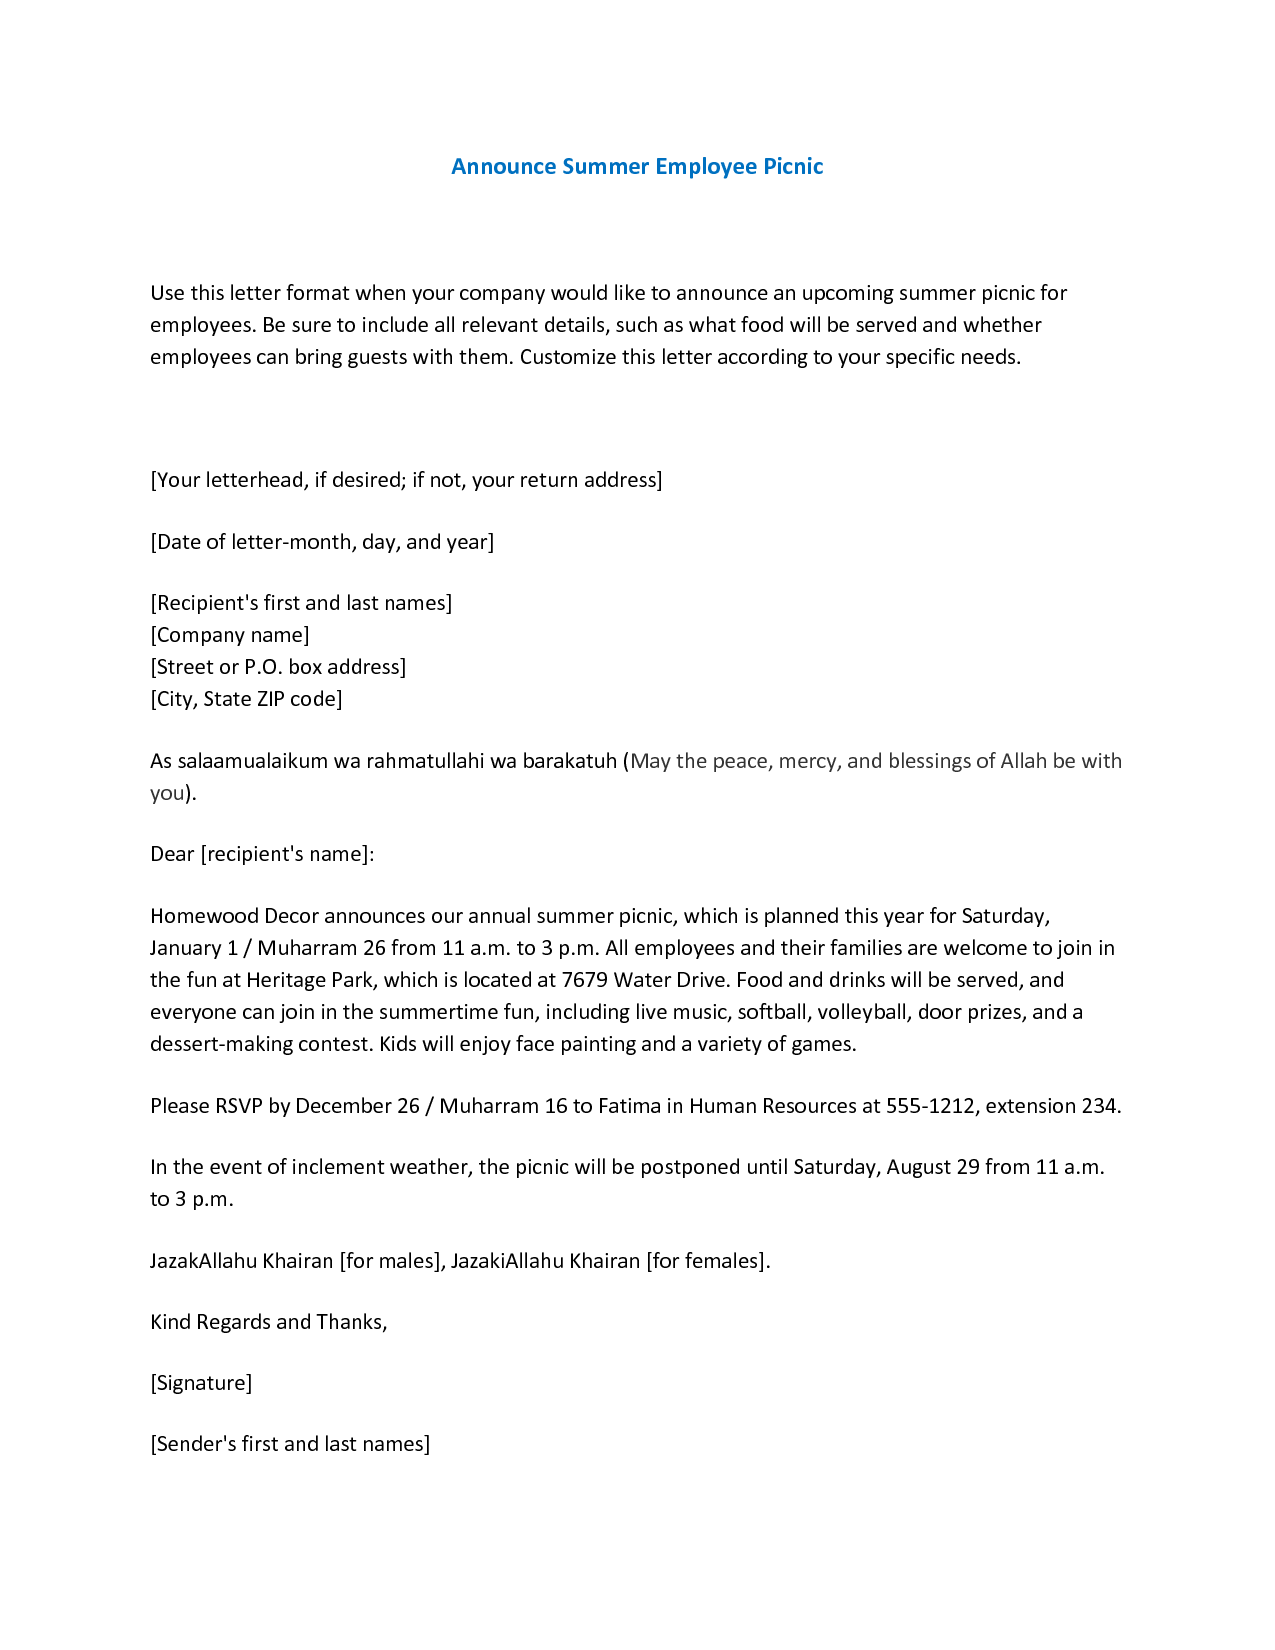 Announce summer employee picnic use this letter format when your announce summer employee picnic use this letter format when your company would like to announce an upcoming summer picnic for employees thecheapjerseys Images